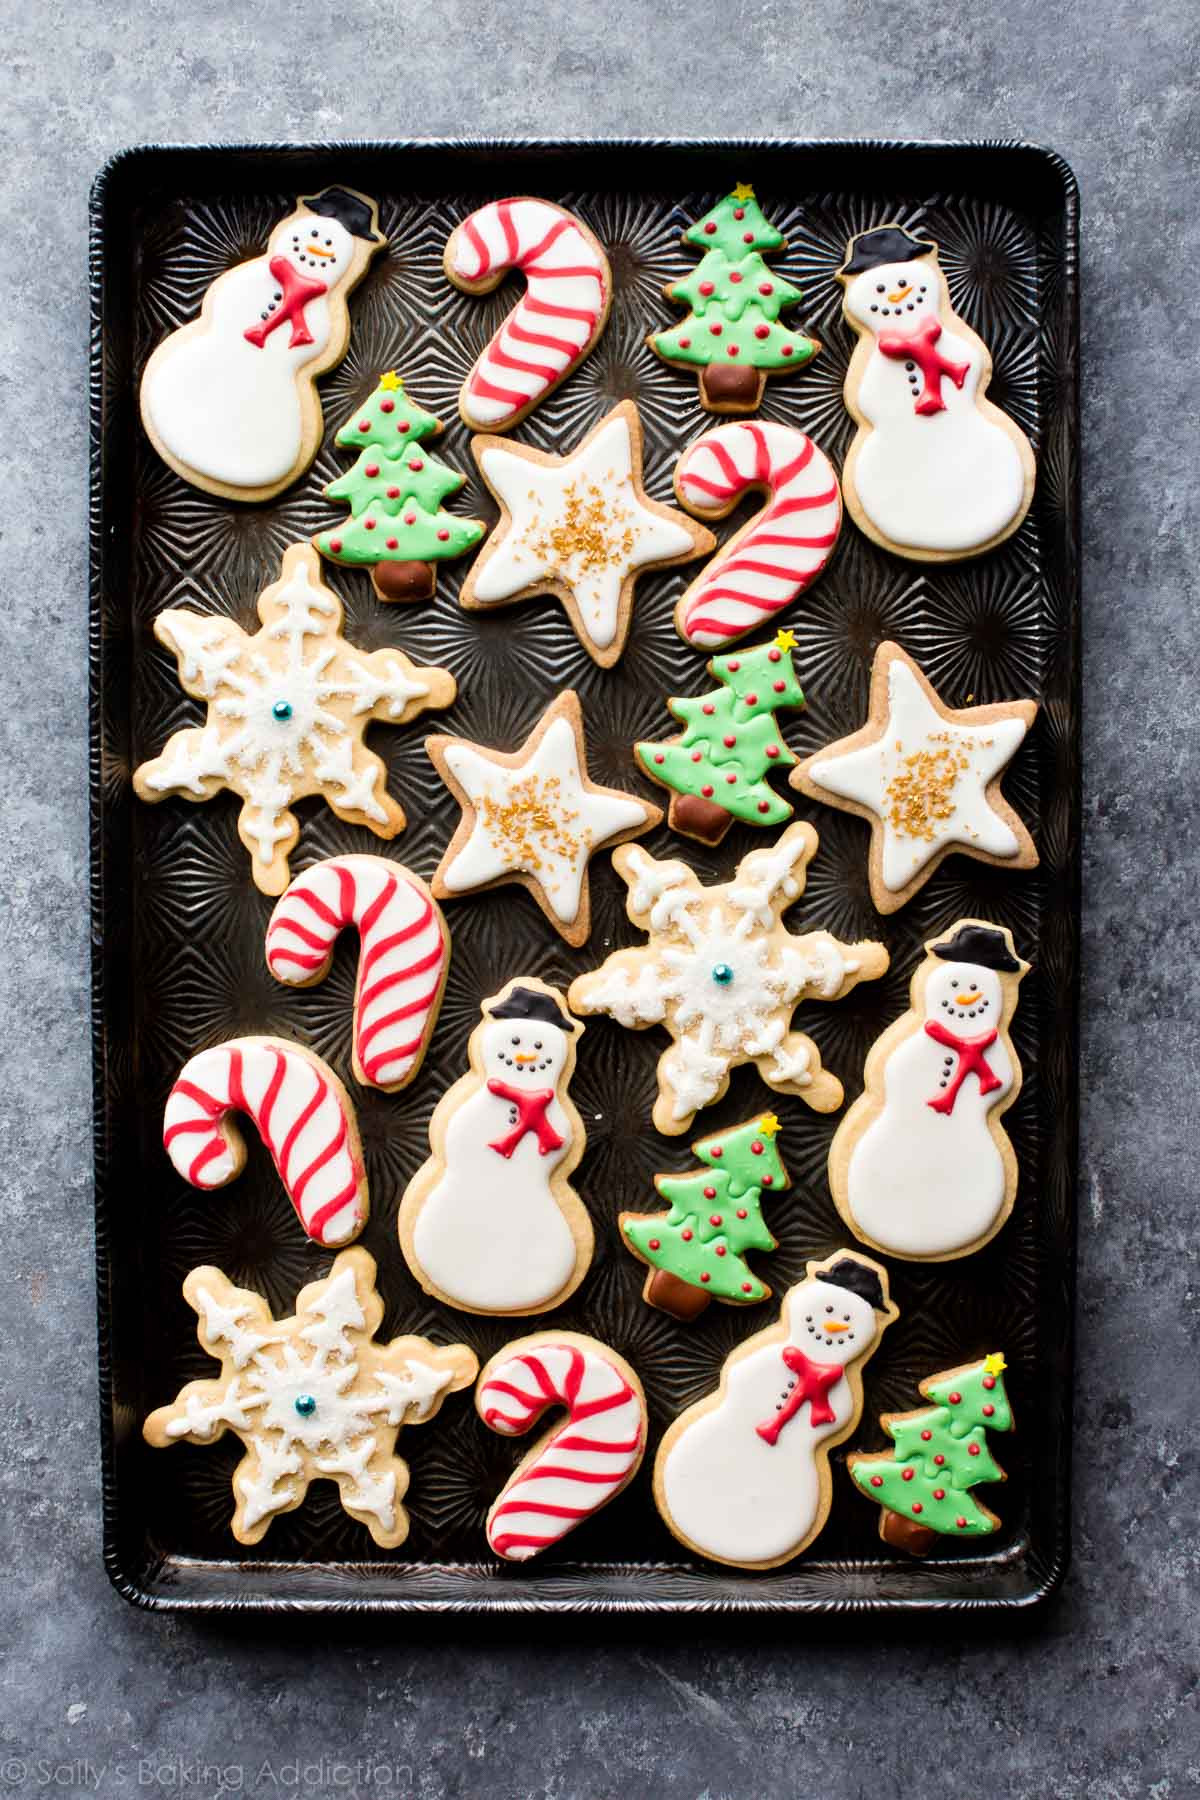 Decorated Christmas Cookies Recipes  How to Decorate Sugar Cookies